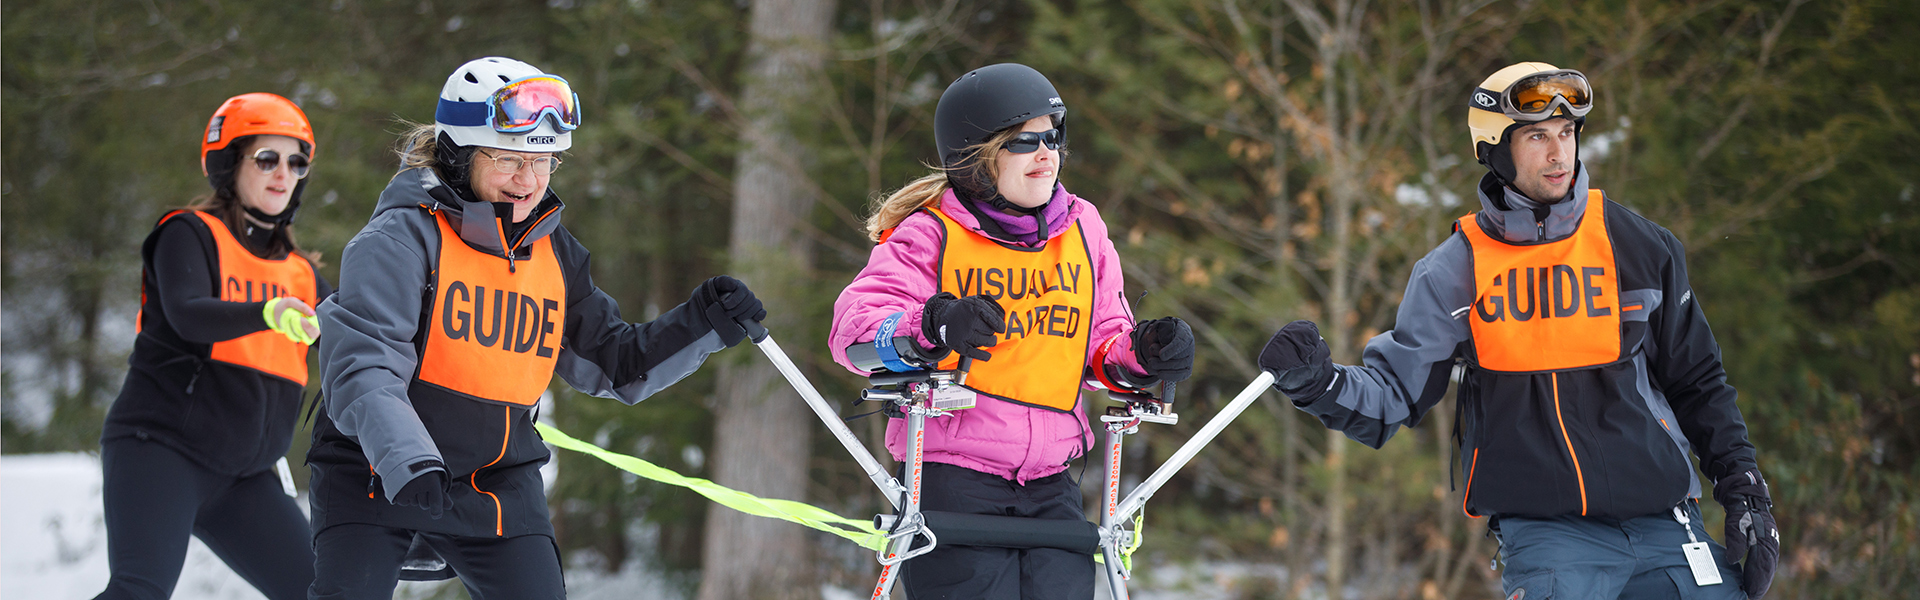 Image of STRIDE adaptive student with instructors on trail